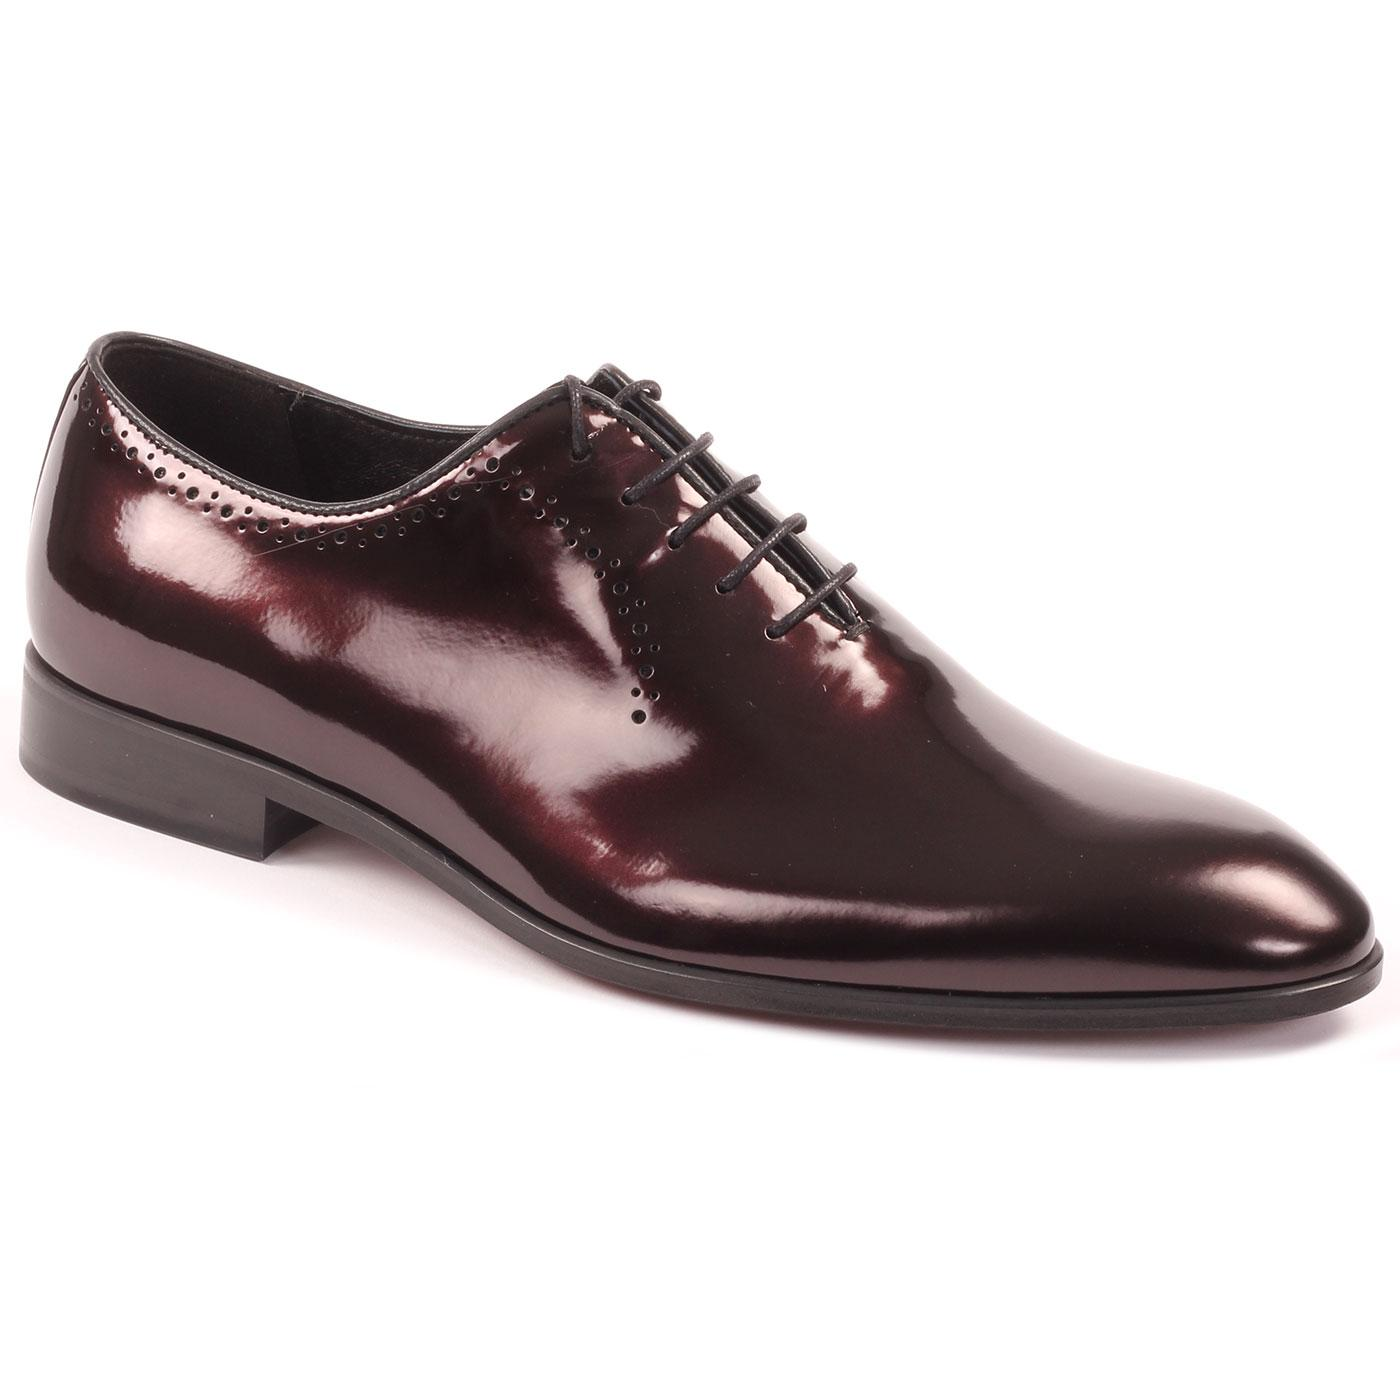 LACUZZO Retro Metallic Leather Brogue Dress Shoes